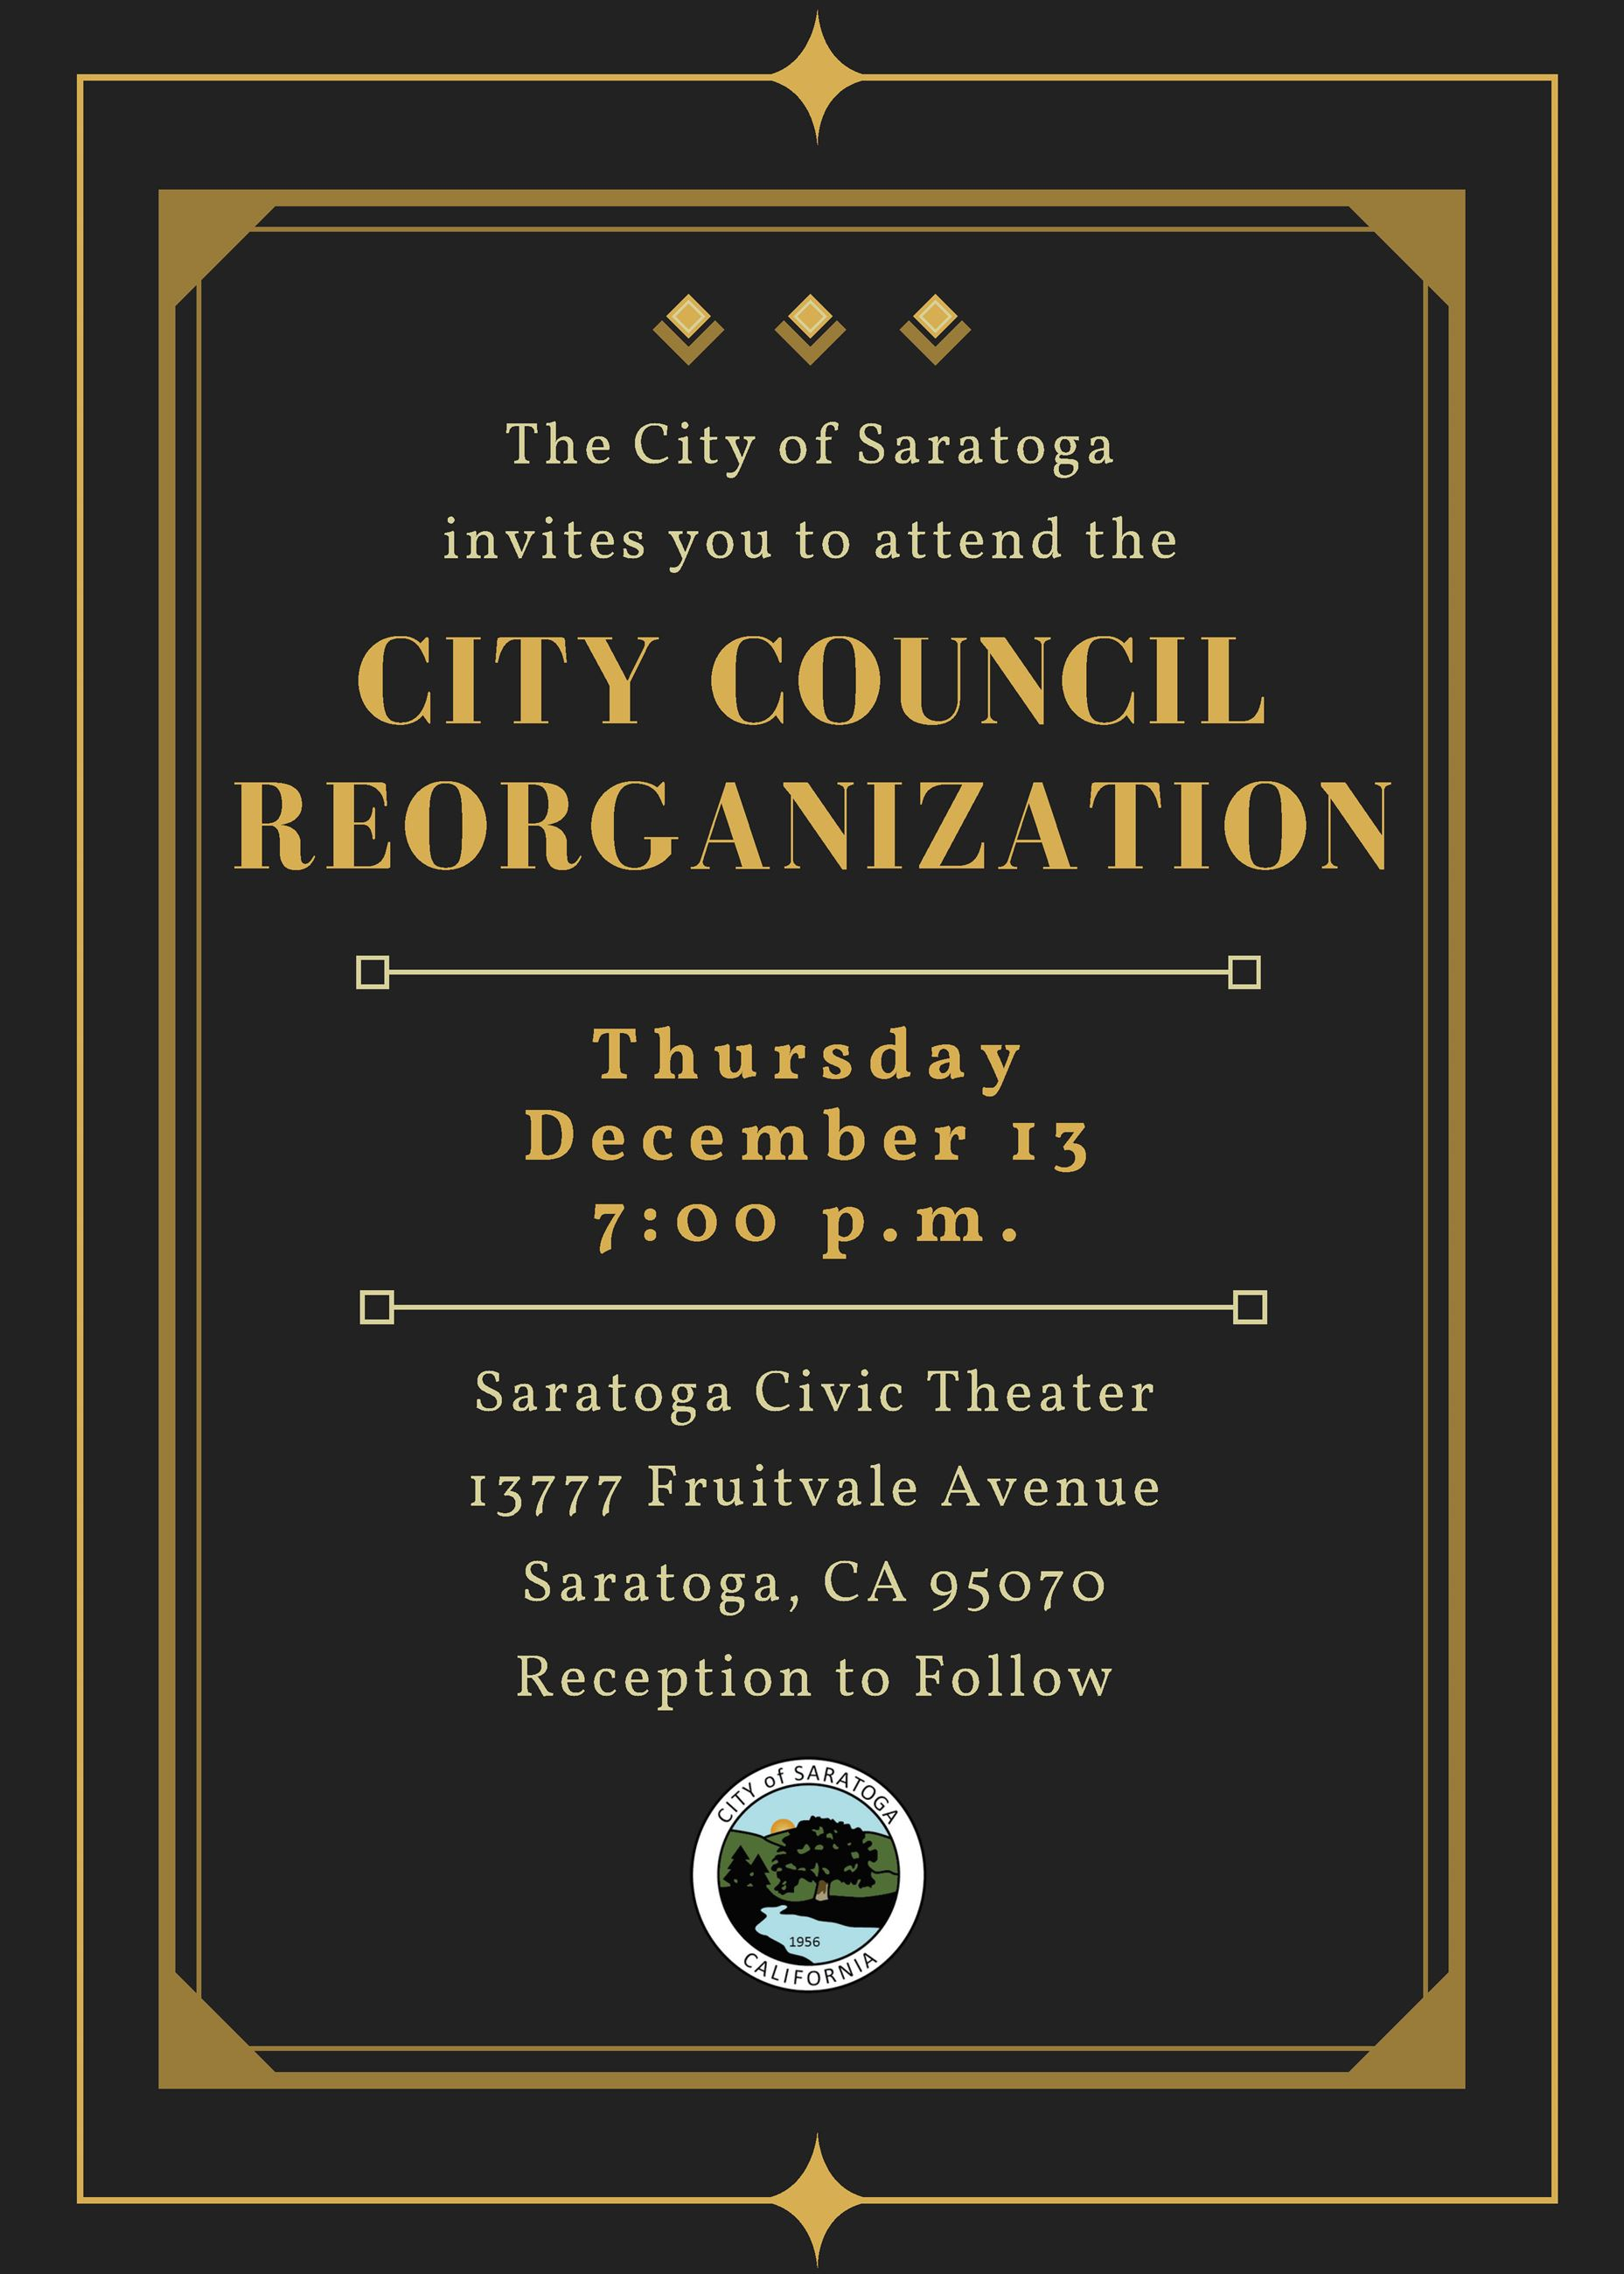 2018 City Council Reorganization